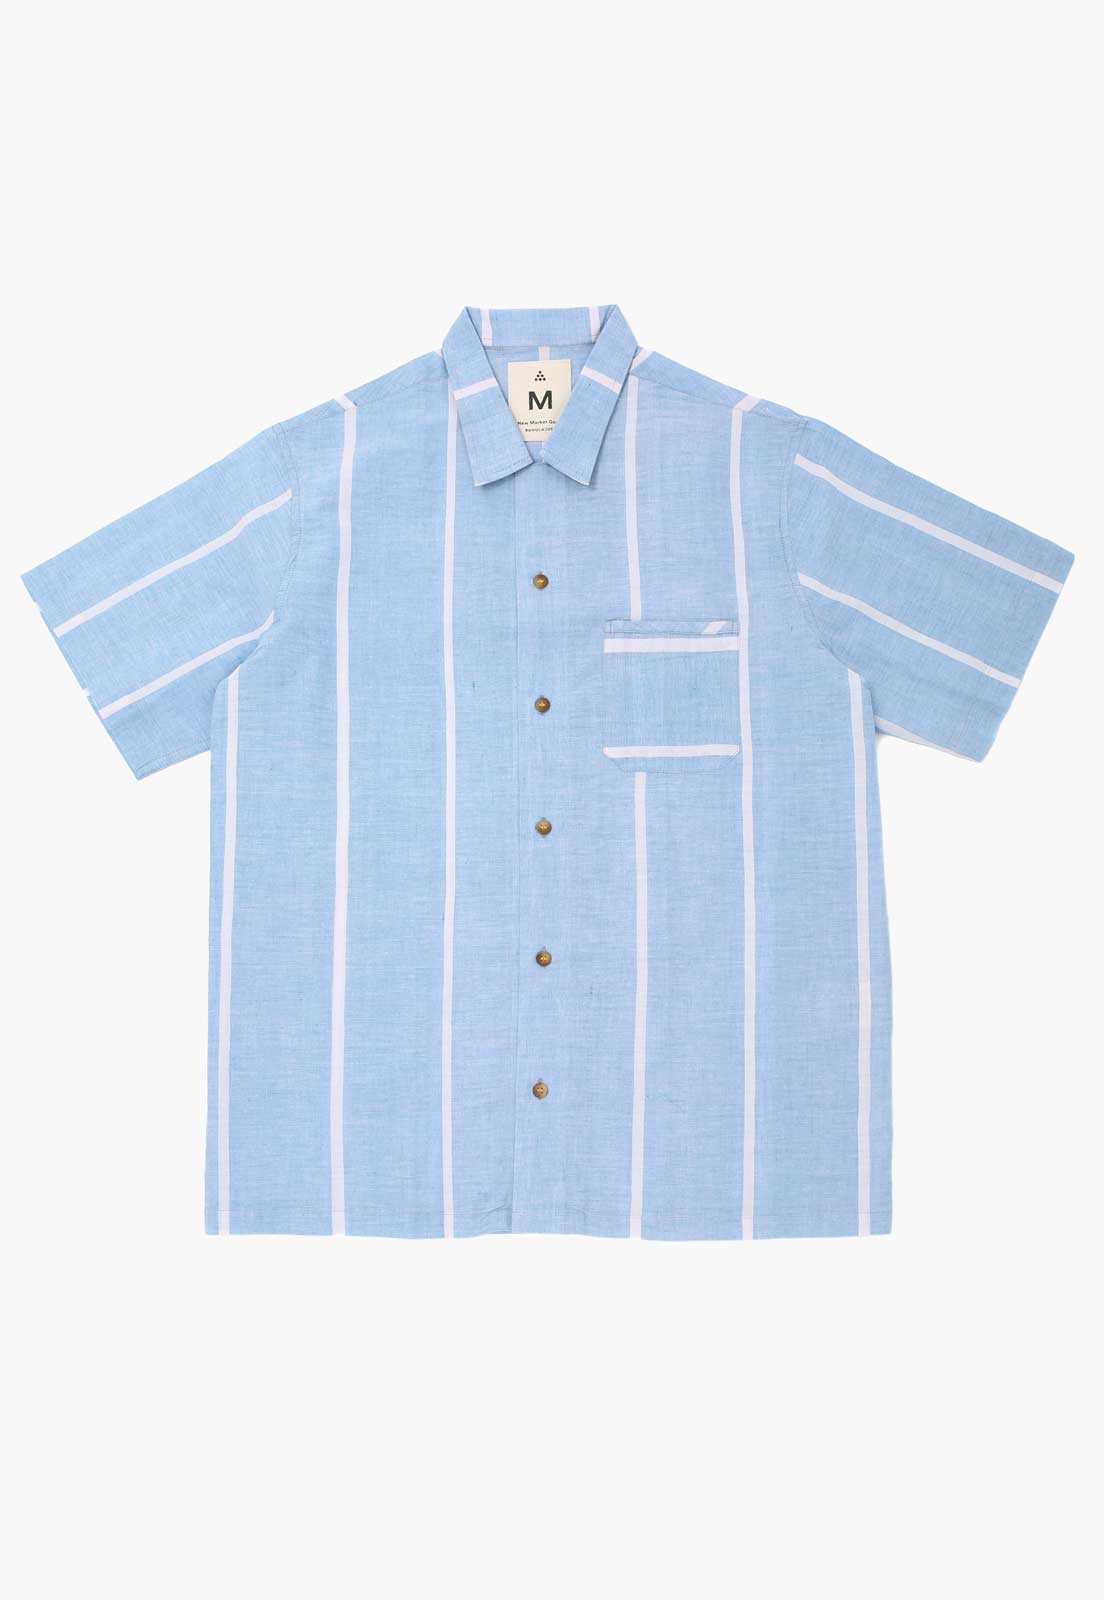 Lungi Blue Box Button-Down